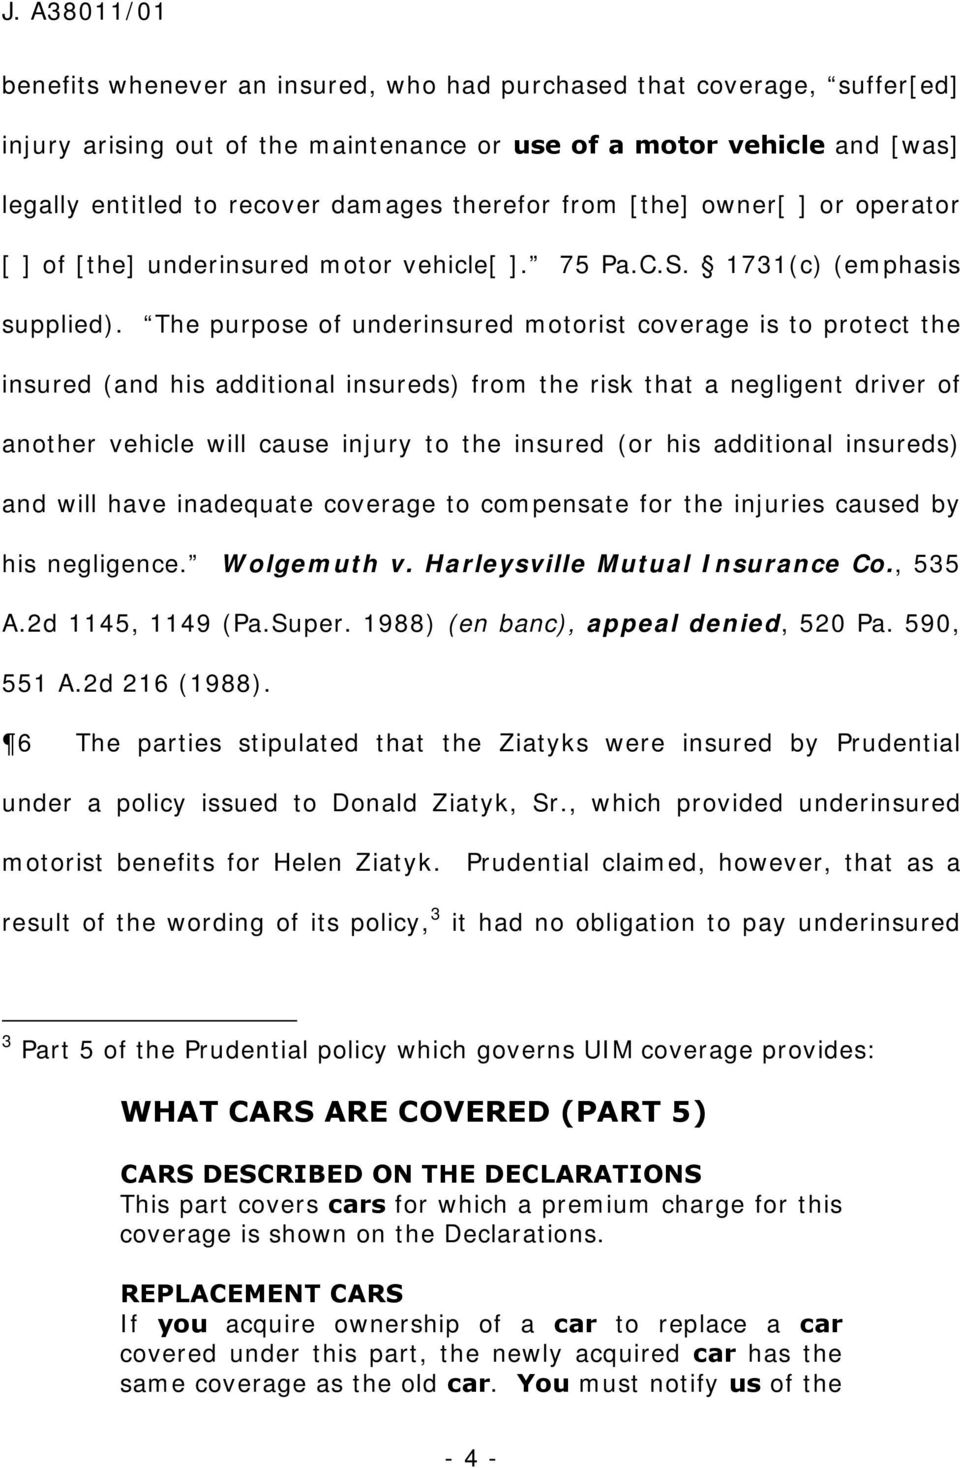 The purpose of underinsured motorist coverage is to protect the insured (and his additional insureds) from the risk that a negligent driver of another vehicle will cause injury to the insured (or his